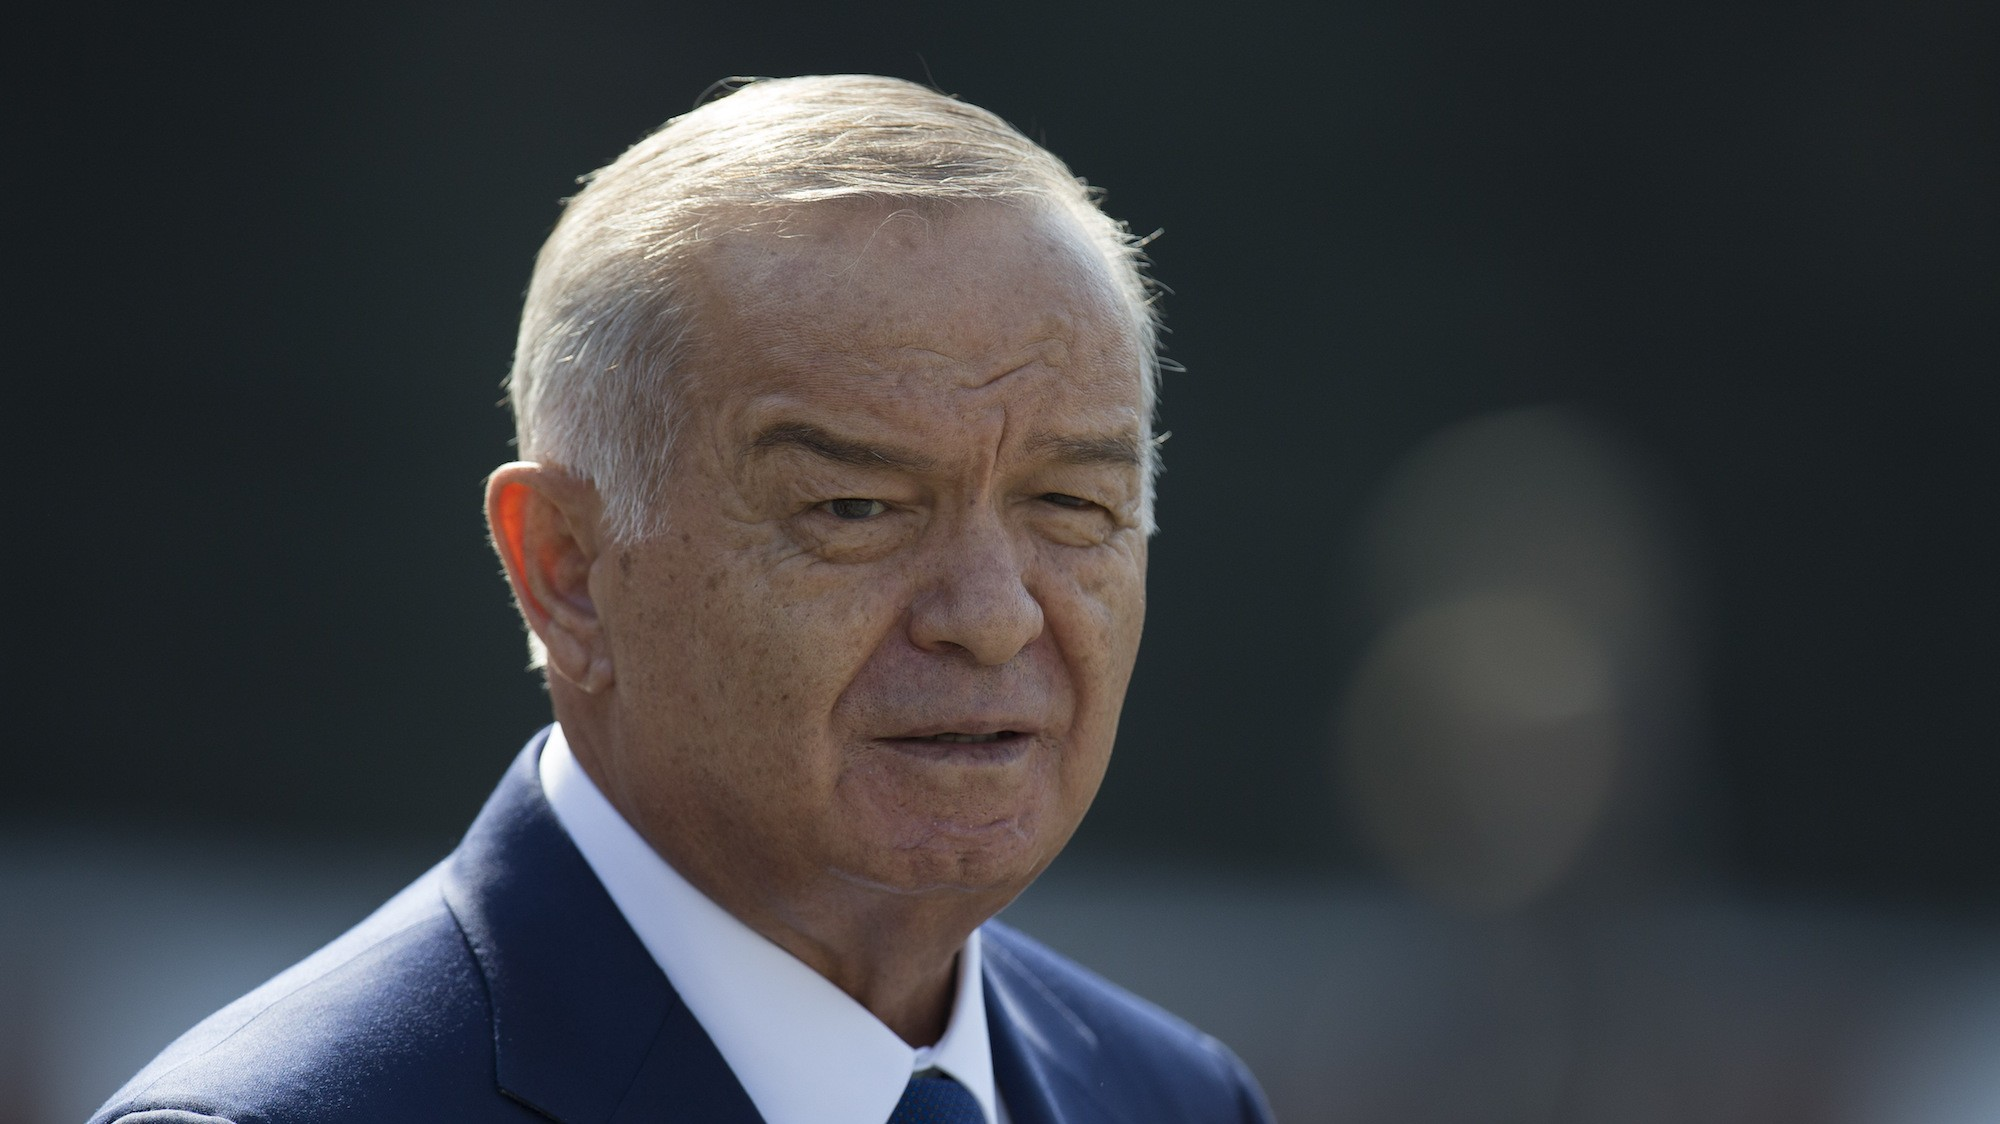 Uzbekistan's president is probably dead — but the government won't confirm it